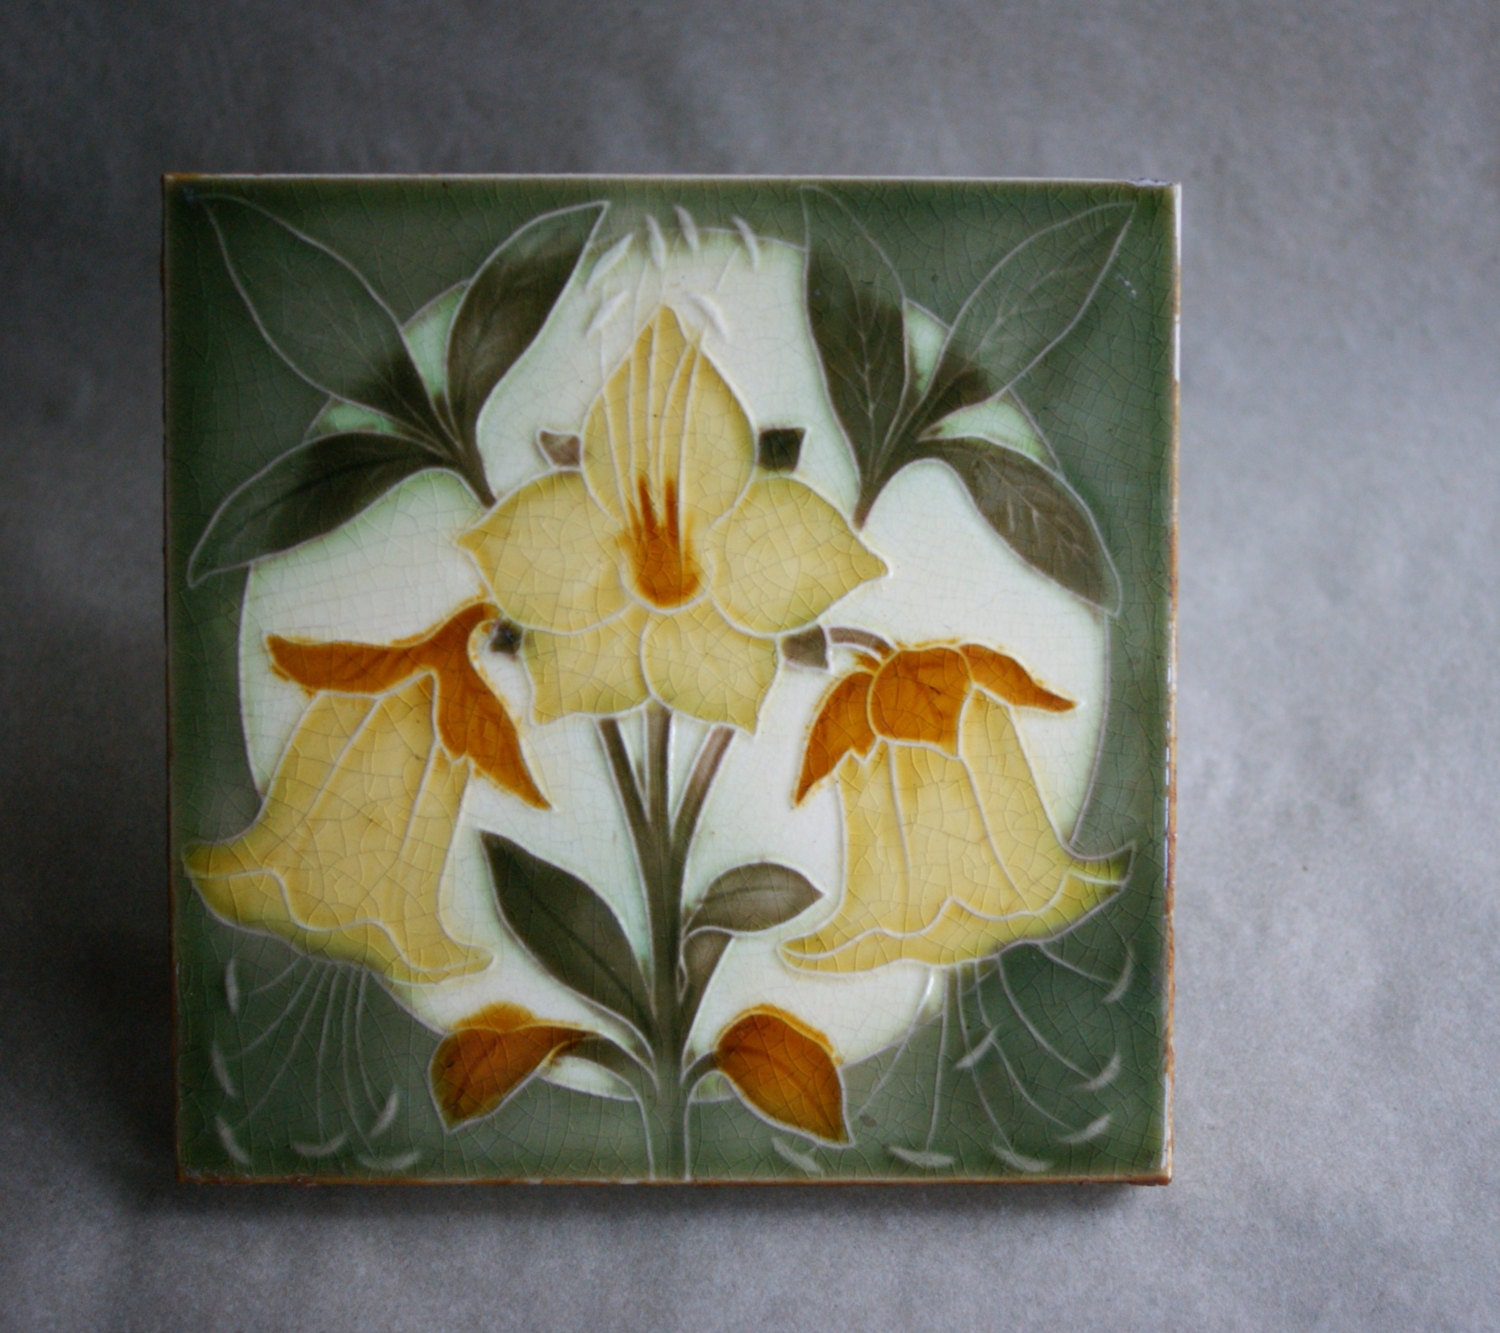 Antique pilkington arts and crafts period art pottery tile for Arts and crafts tiles